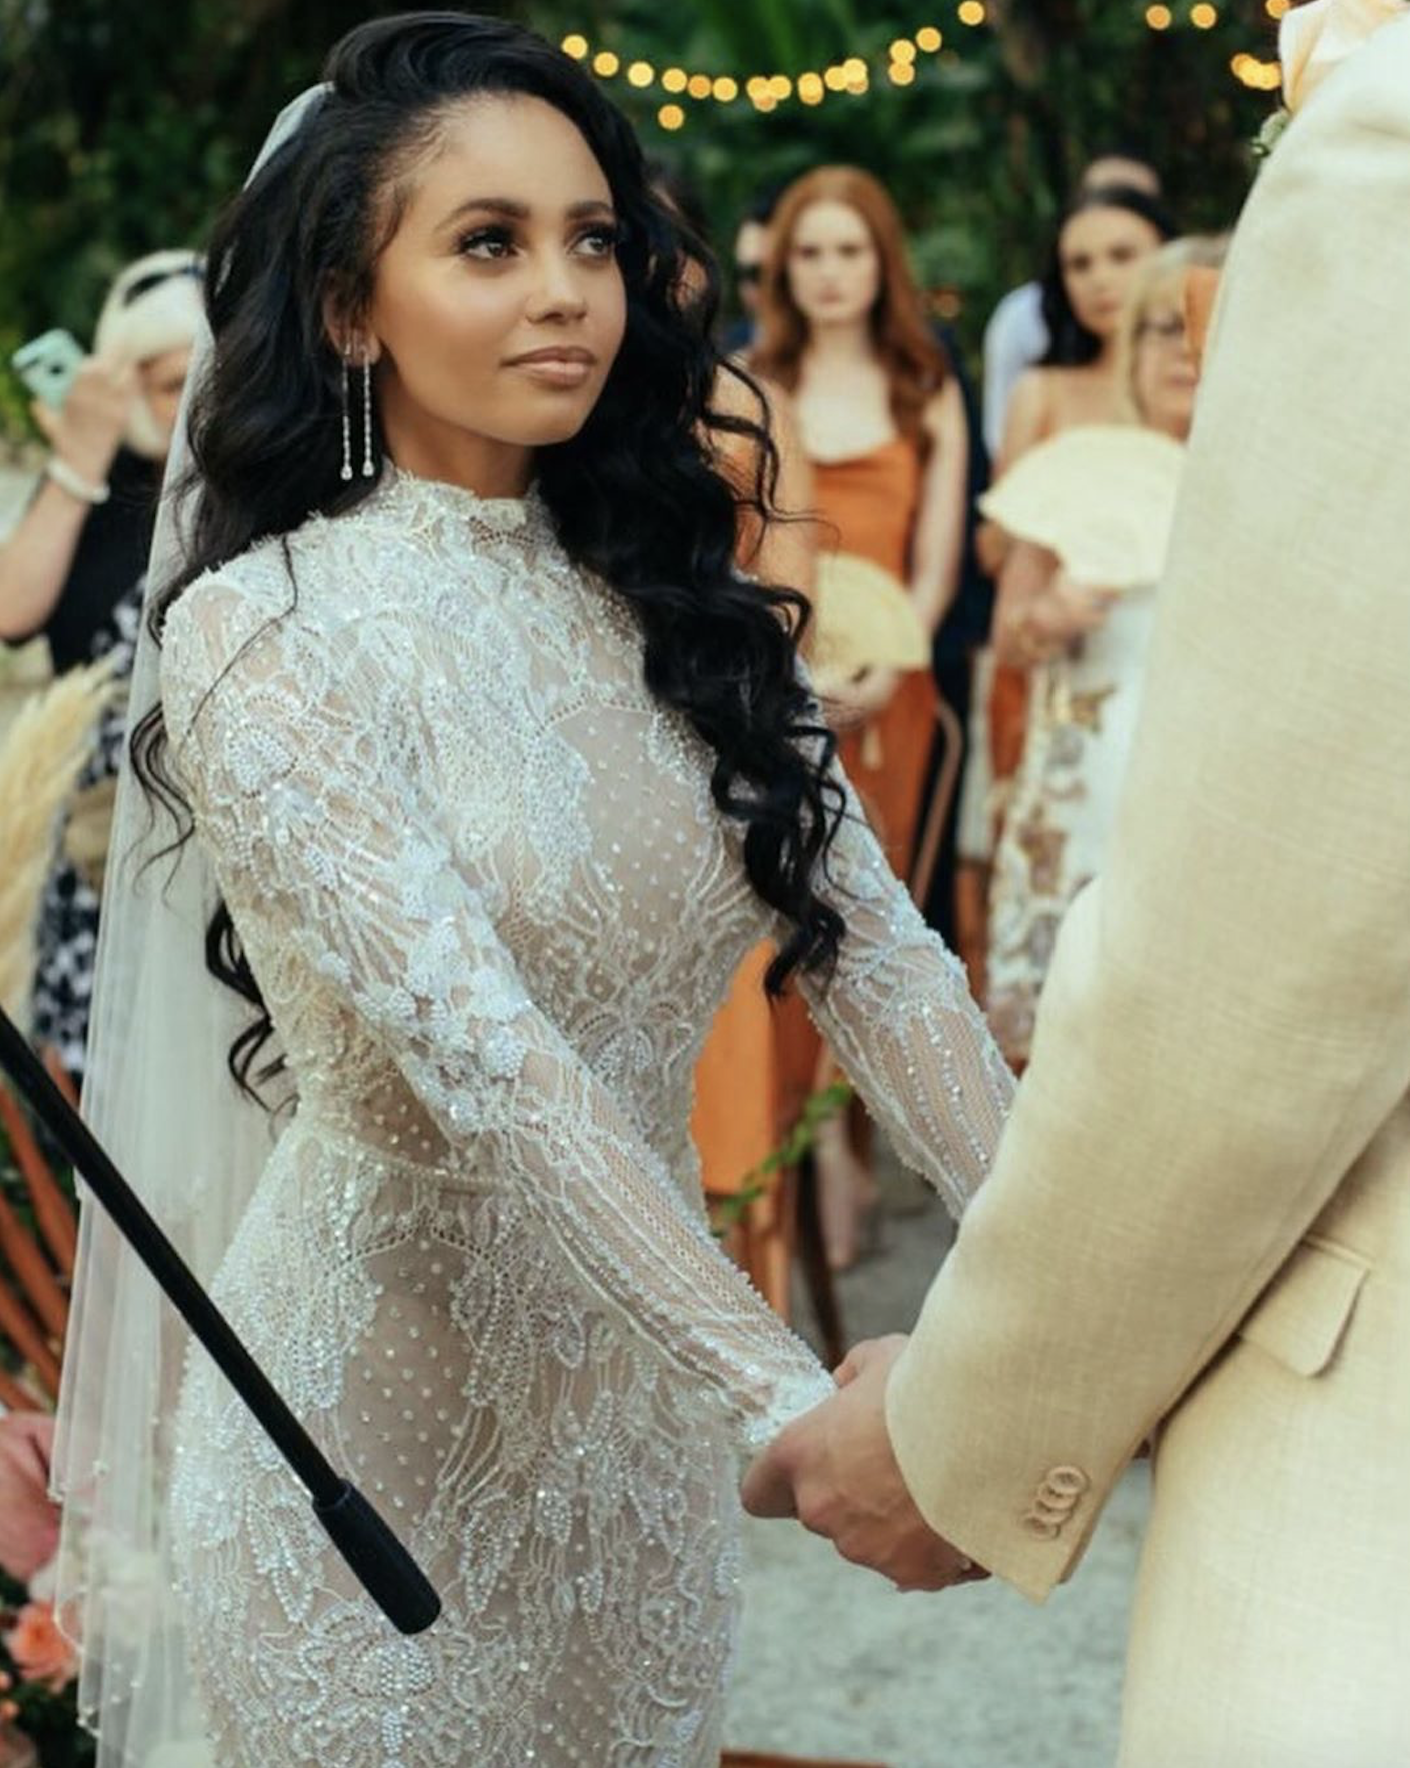 Vanessa Morgan Got Married In A Stunning Lace Wedding Dress